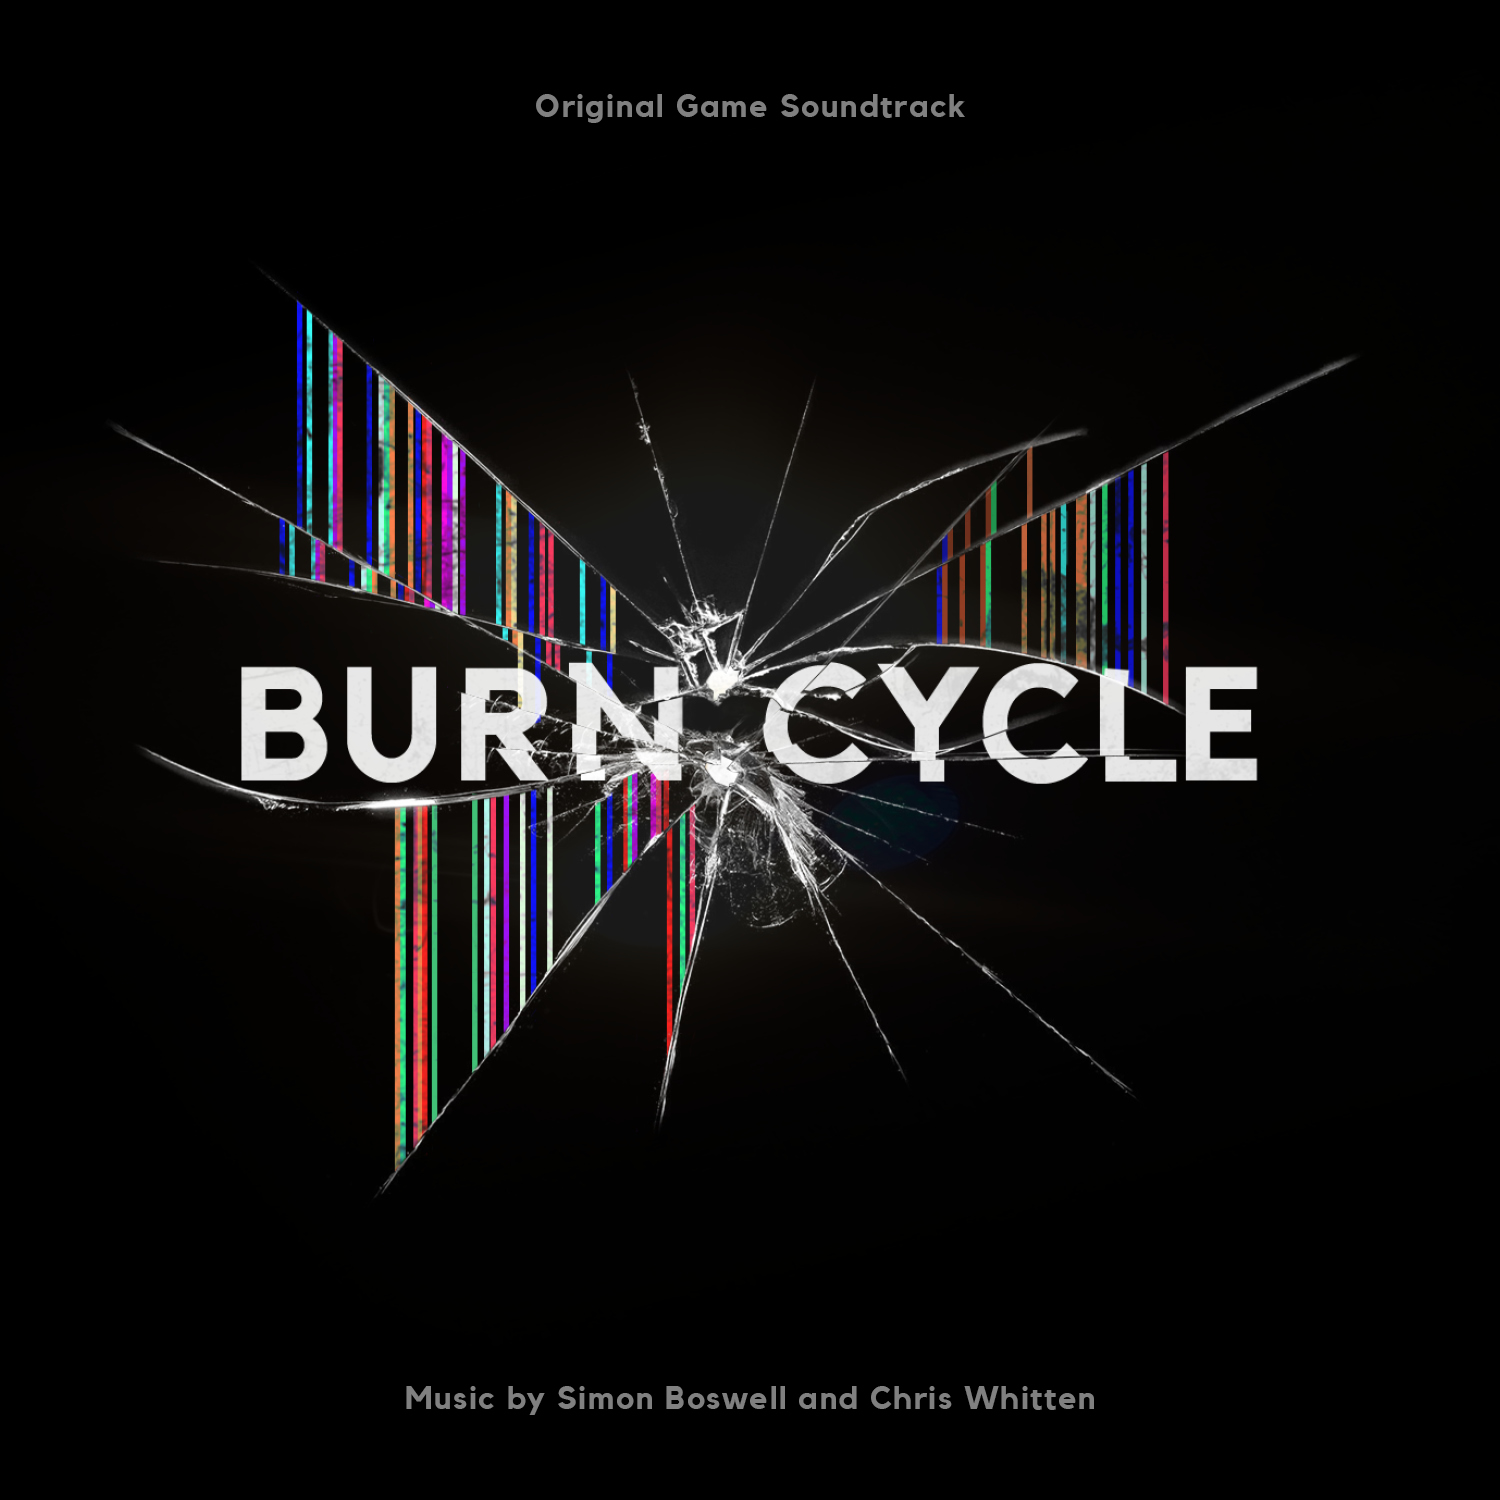 The first ever video game soundtrack to feature orchestral music. Burn:Cycle the classic Philips Cdi video game's soundtrack was composer by Simon Boswell and Chris Whitten. Boswell has recorded and produced the like of Elton John, Dolly Parton and 23 Skidoo. Whitten learnt his craft recordings with Johnny Cash and Paul McCartney